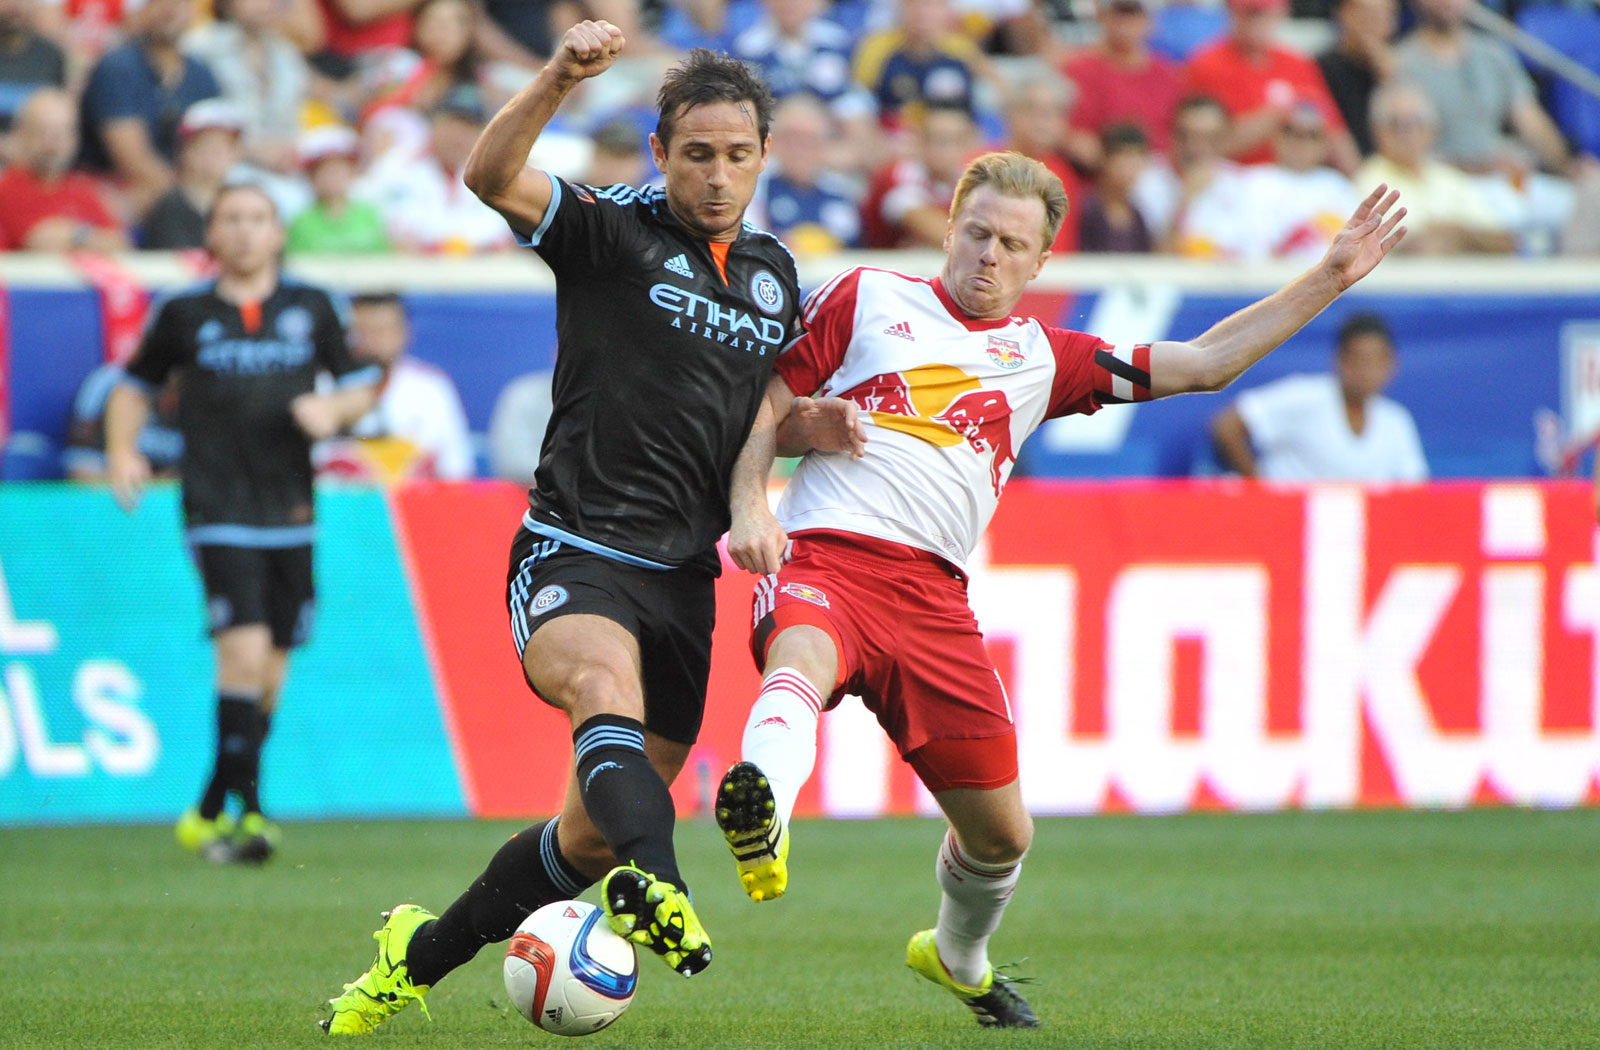 Frank Lampard and Dax McCarty battle for the ball at midfield. McCarty's Red Bulls came out on top again, completing the season sweep with an Aug. 9 2-0 win.